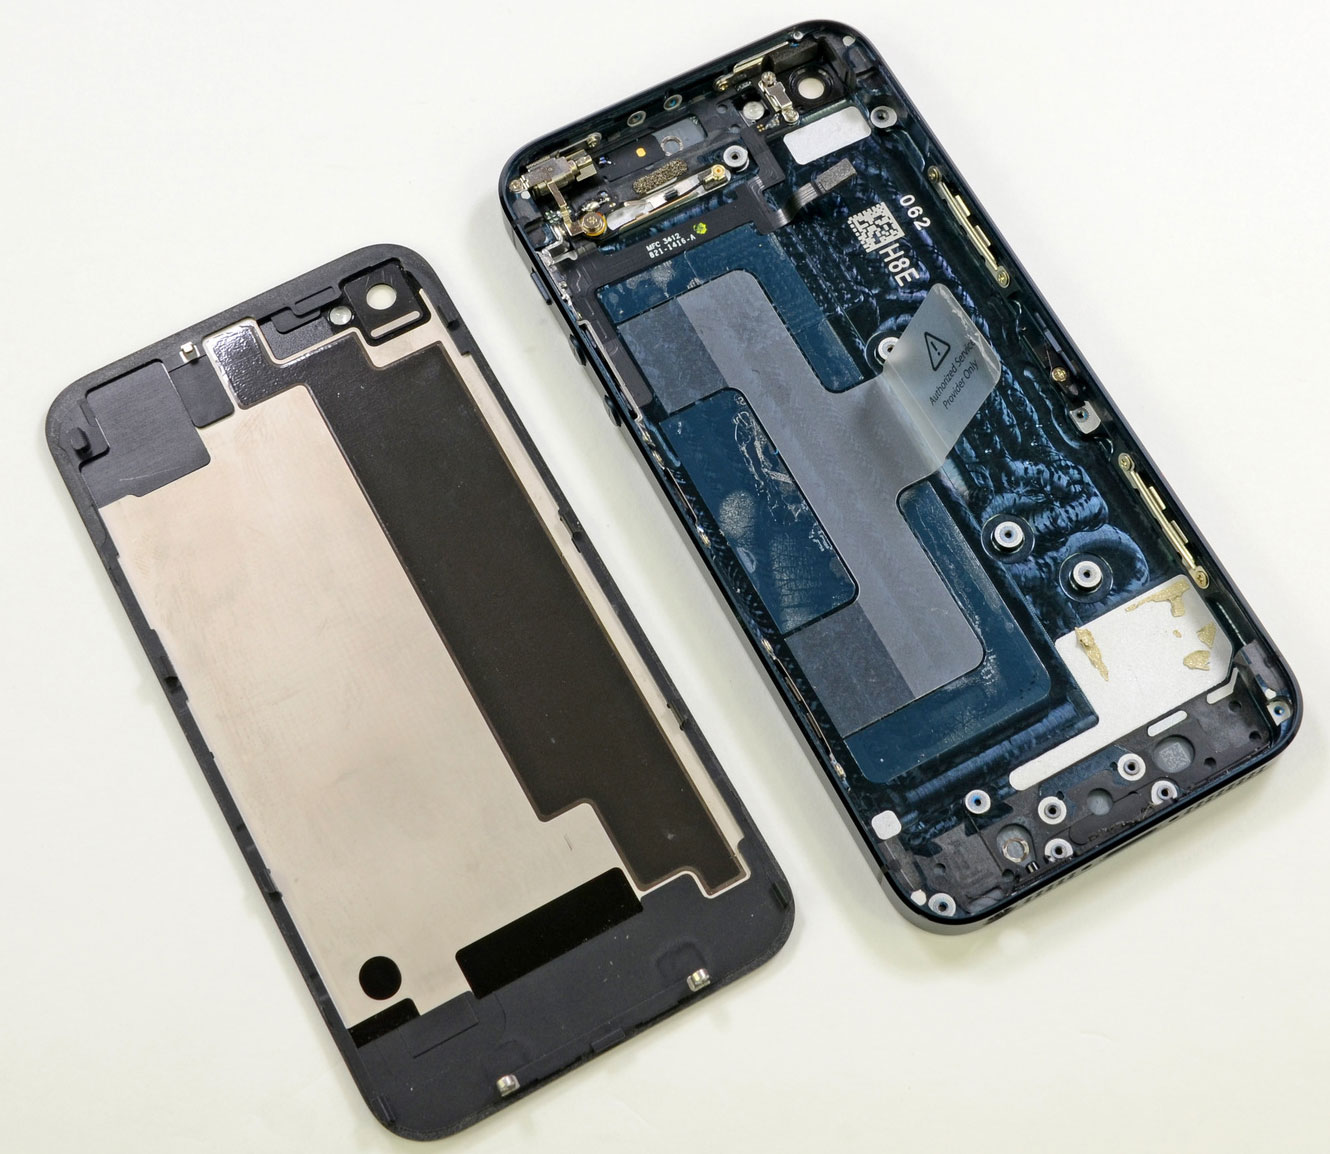 Carcasa Unibody del iPhone 5